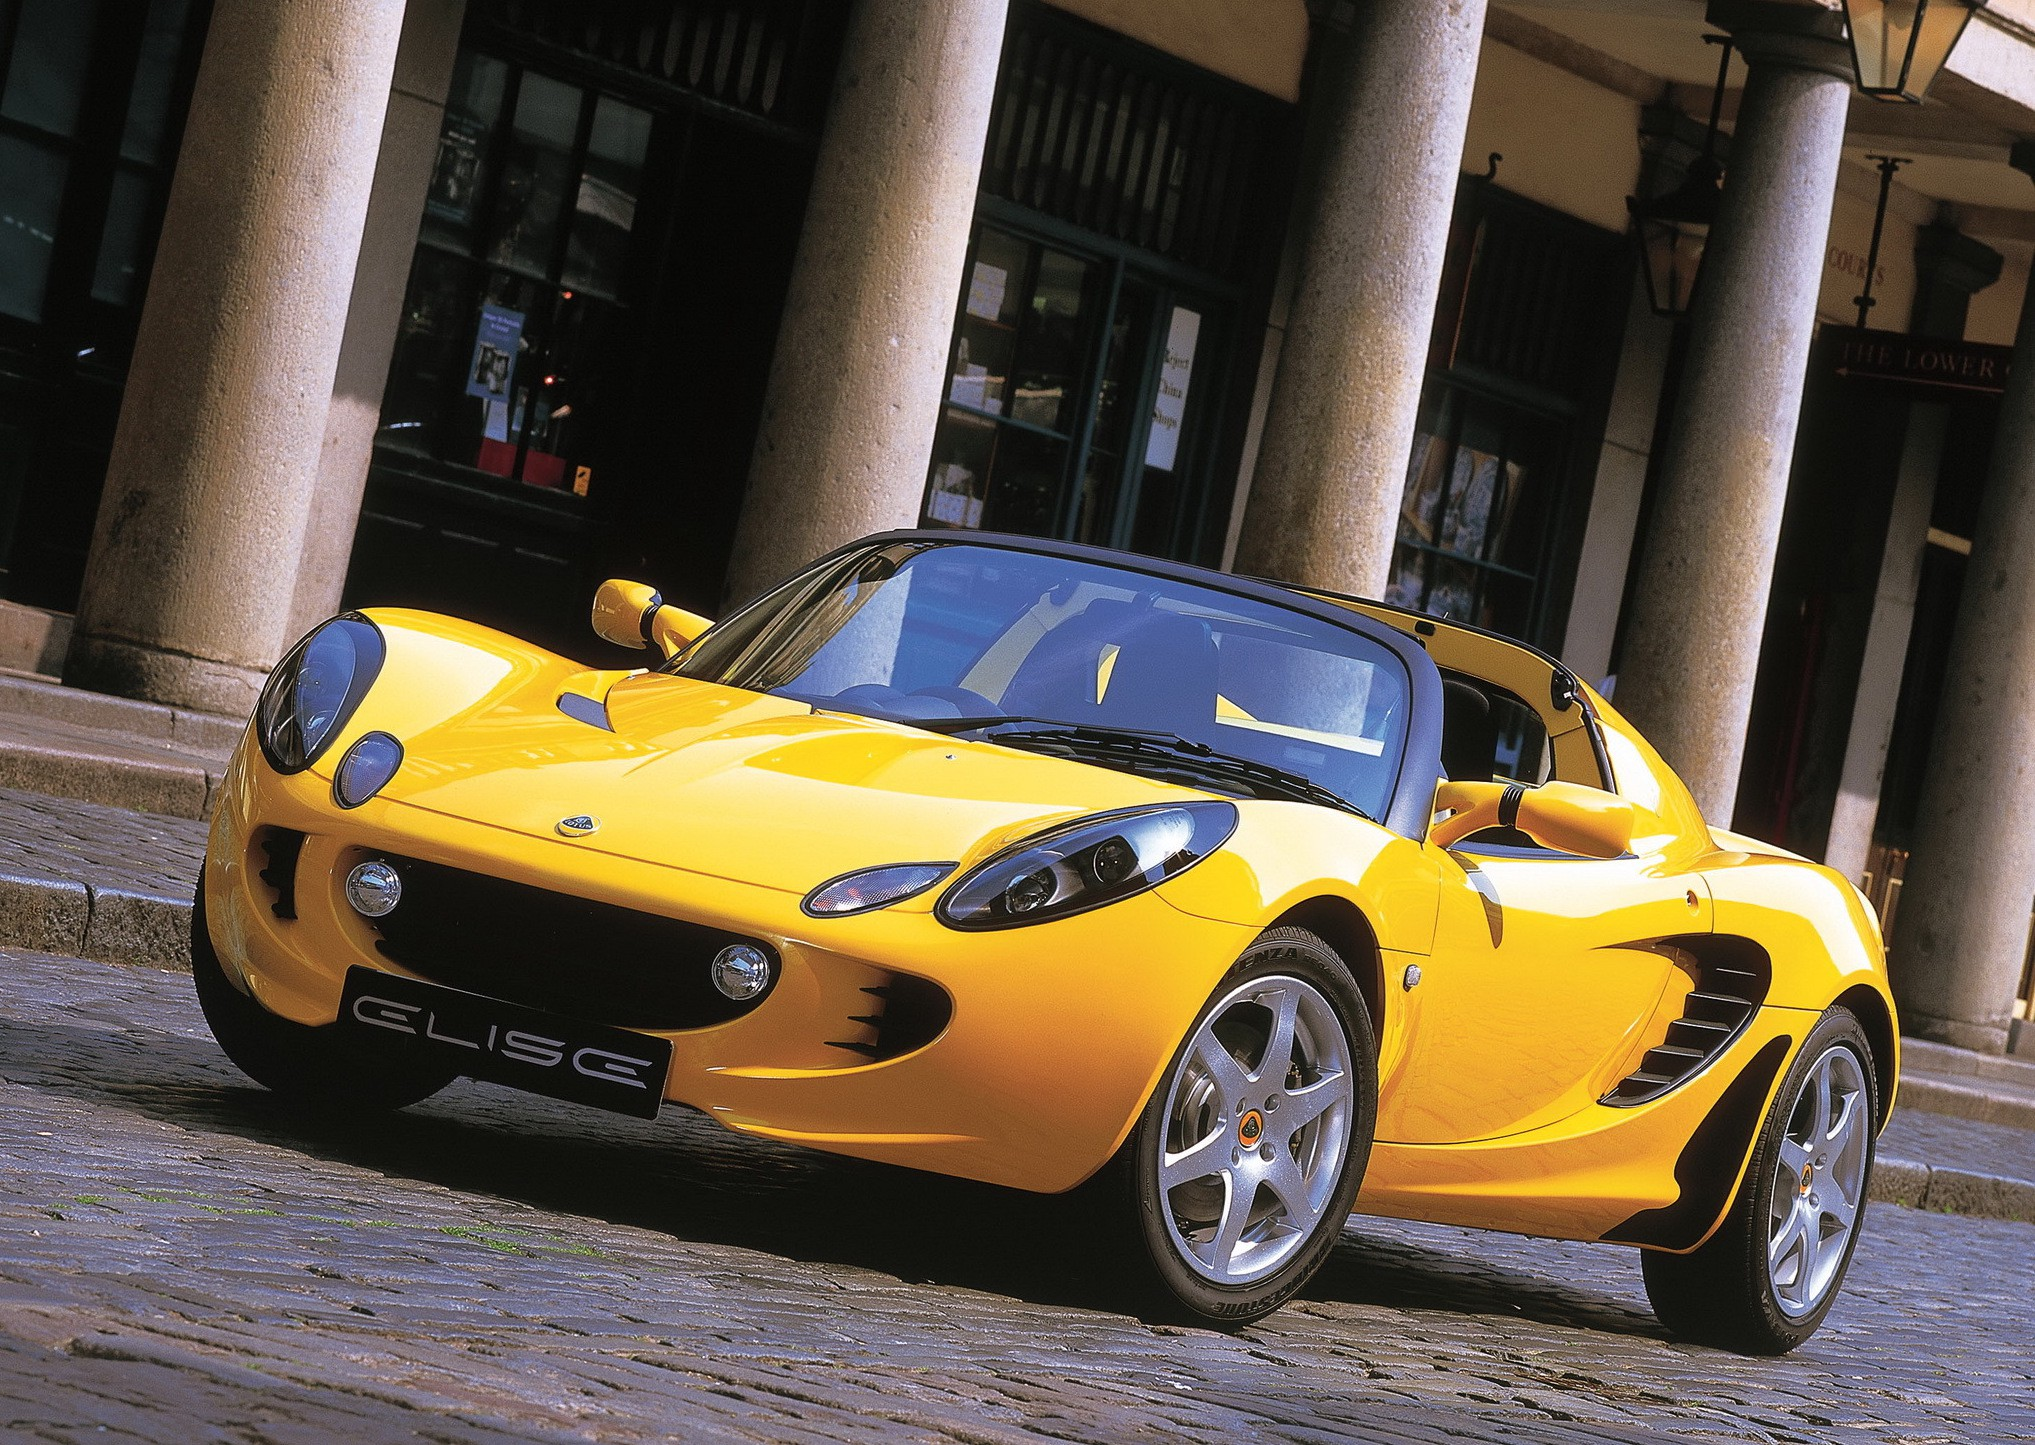 ... lotus-elise-targa-2-doors-2004-model-exterior- ... & lotus-elise-targa-2-doors-2004-model-exterior-photos-2.jpg